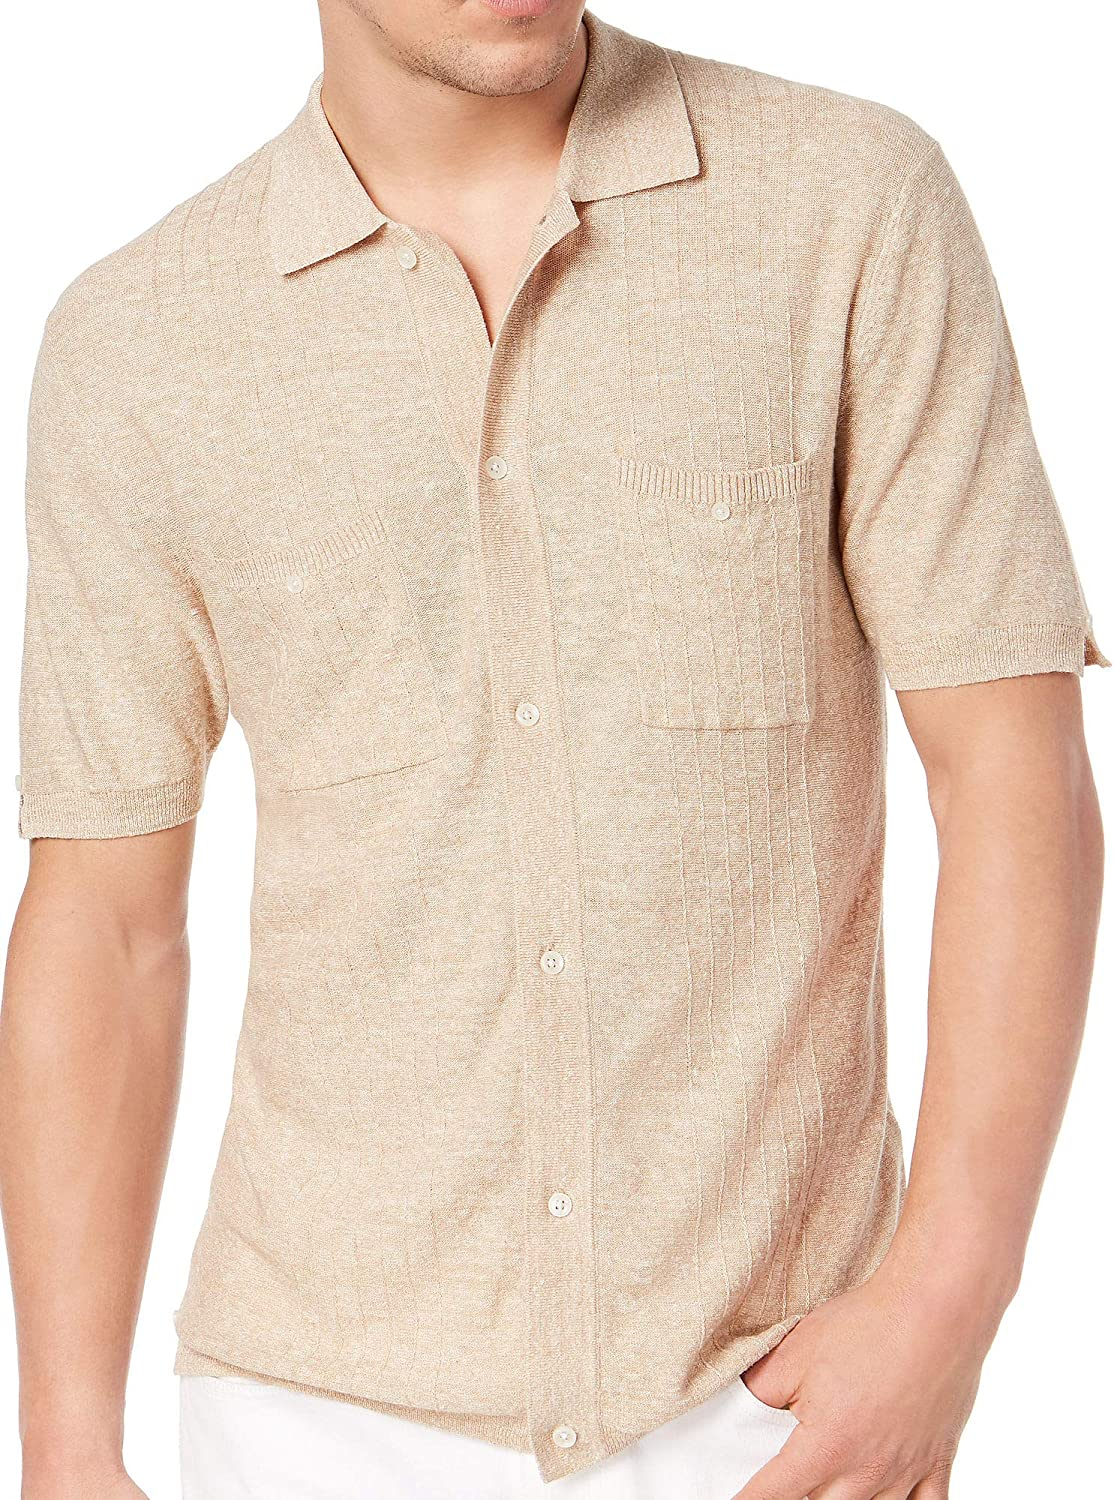 Tasso Elba Mens Knit Pocket Button Up Shirt